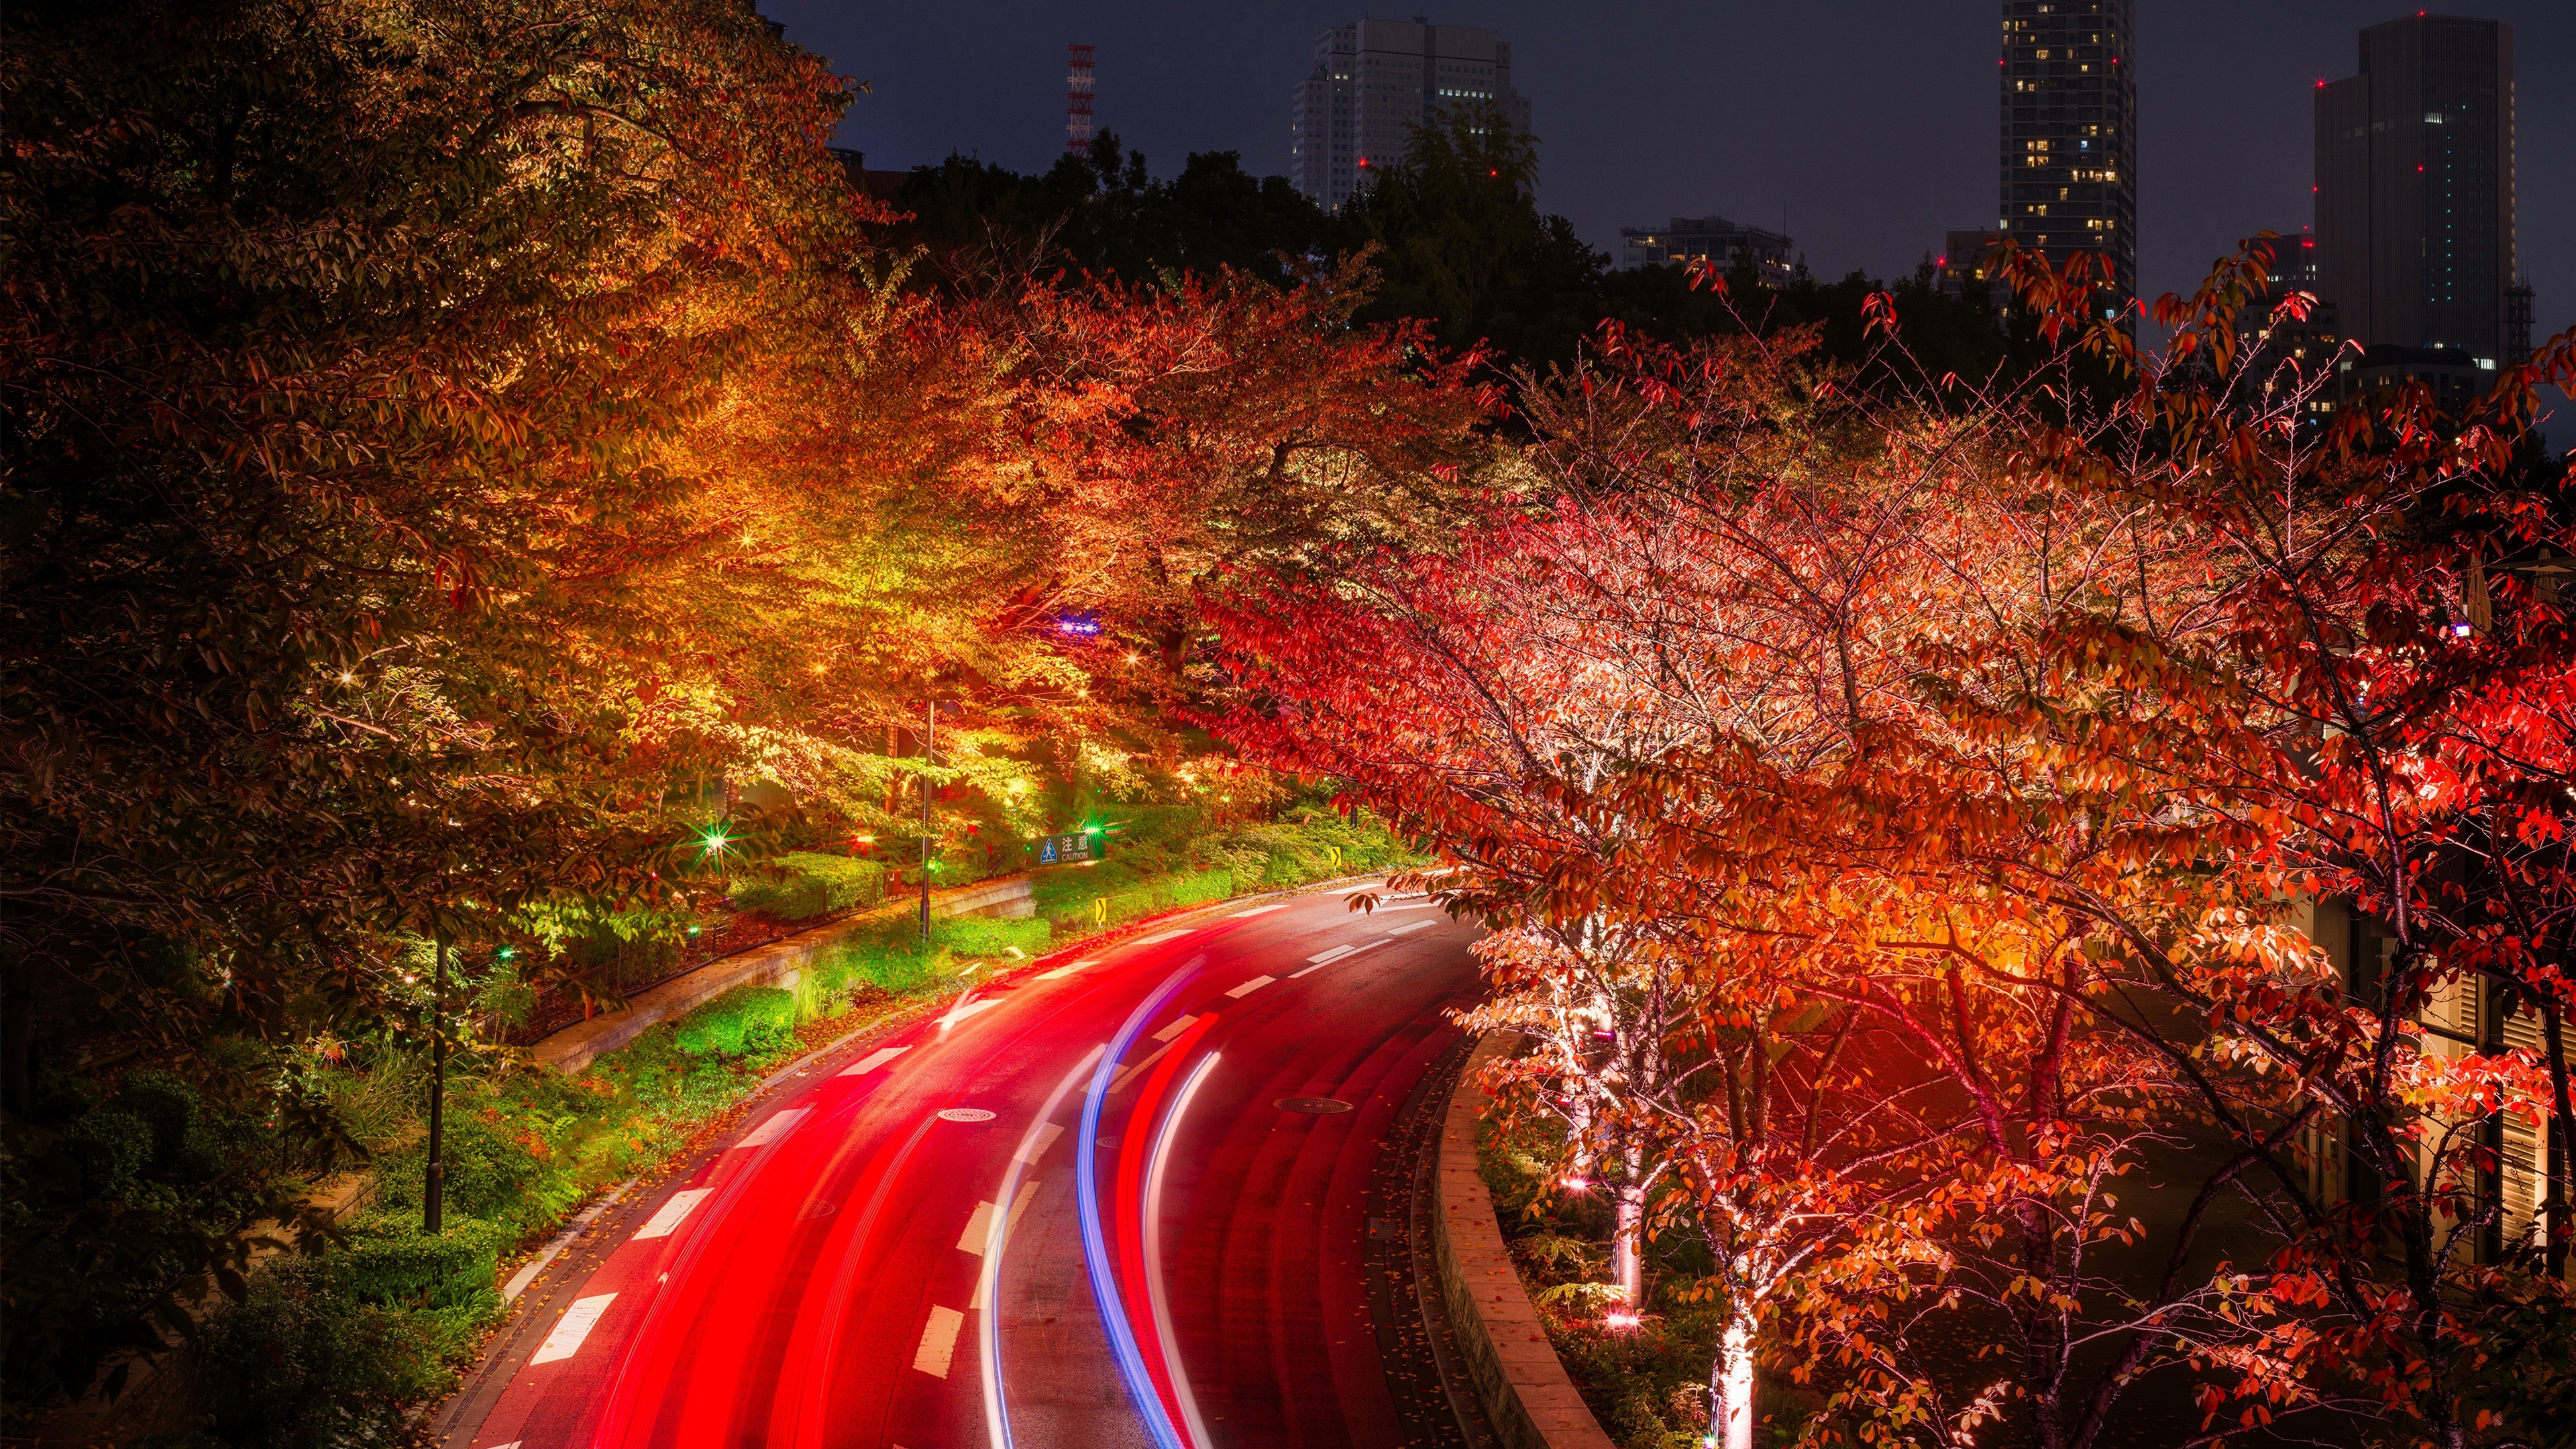 Wallpaper Tokyo, Japan, roads, trees, night, lights 3840x2160 UHD 4K